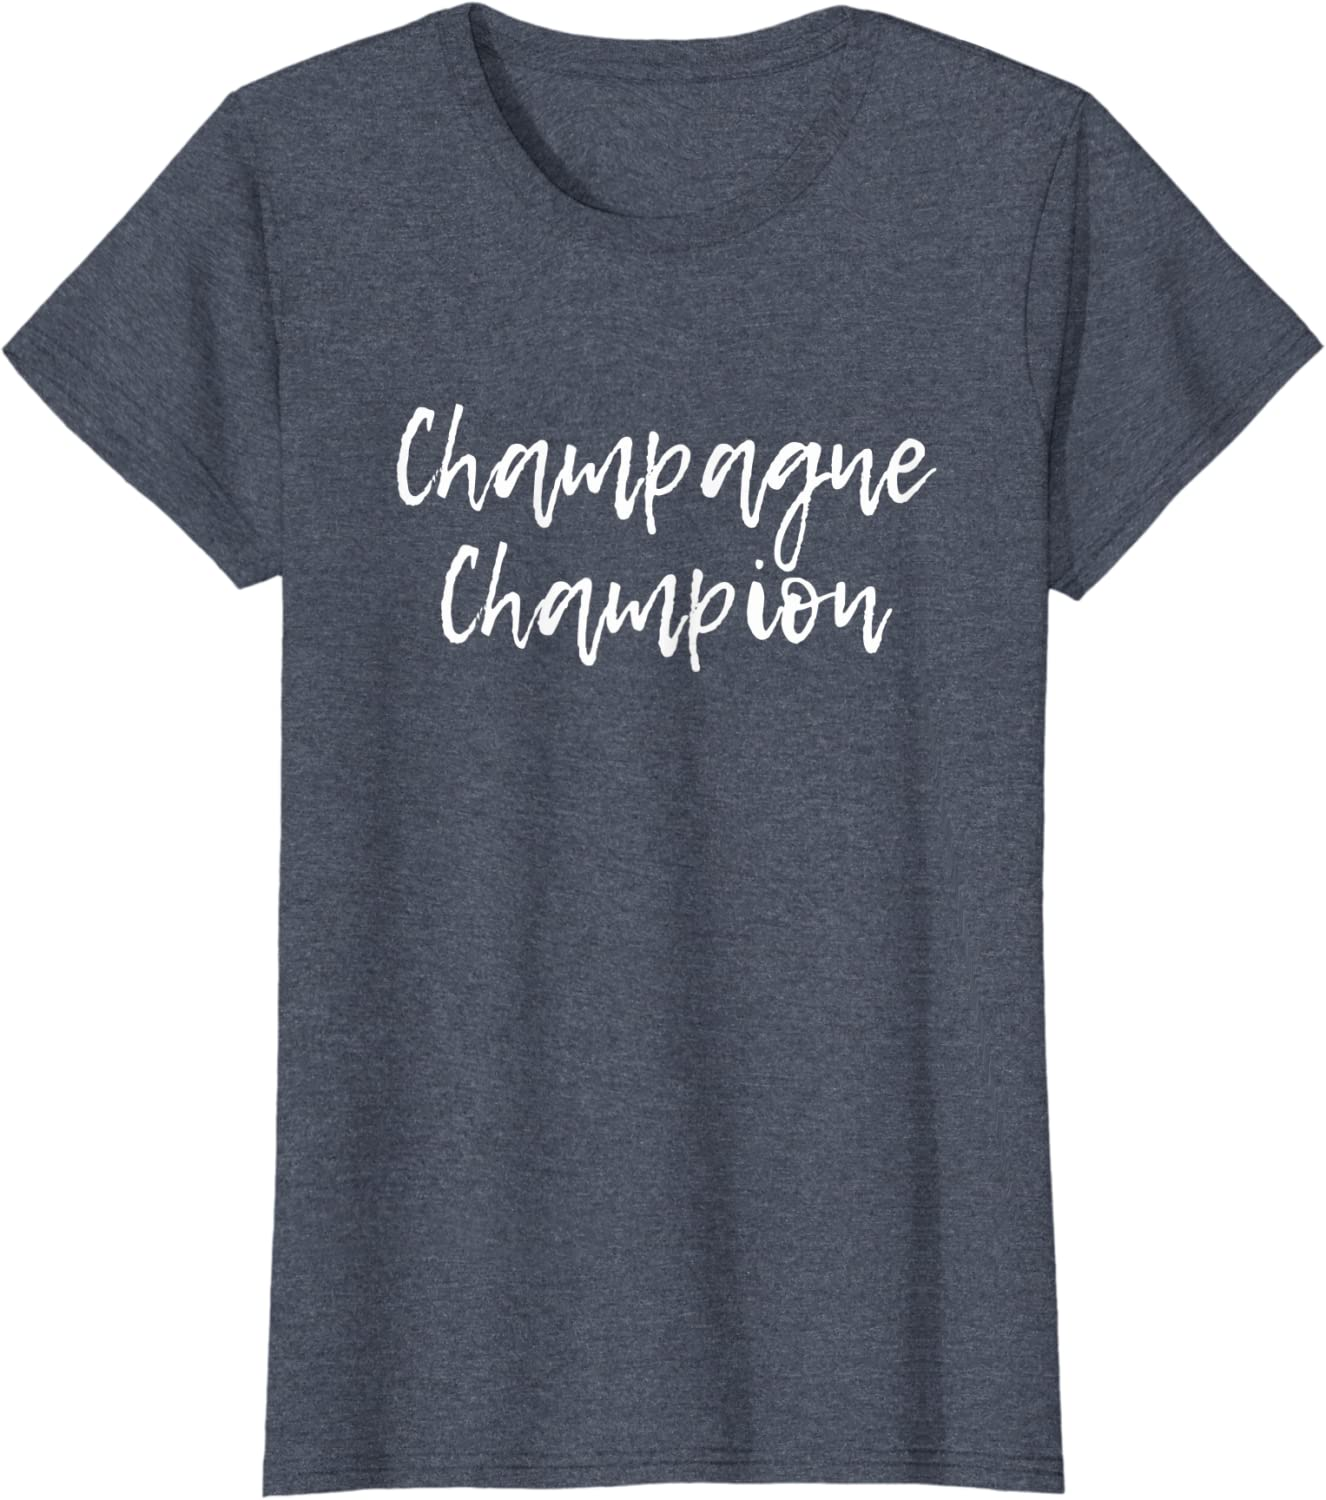 Amazon Com Champagne Champion T Shirt For Champagne Lovers Clothing [ 1500 x 1327 Pixel ]